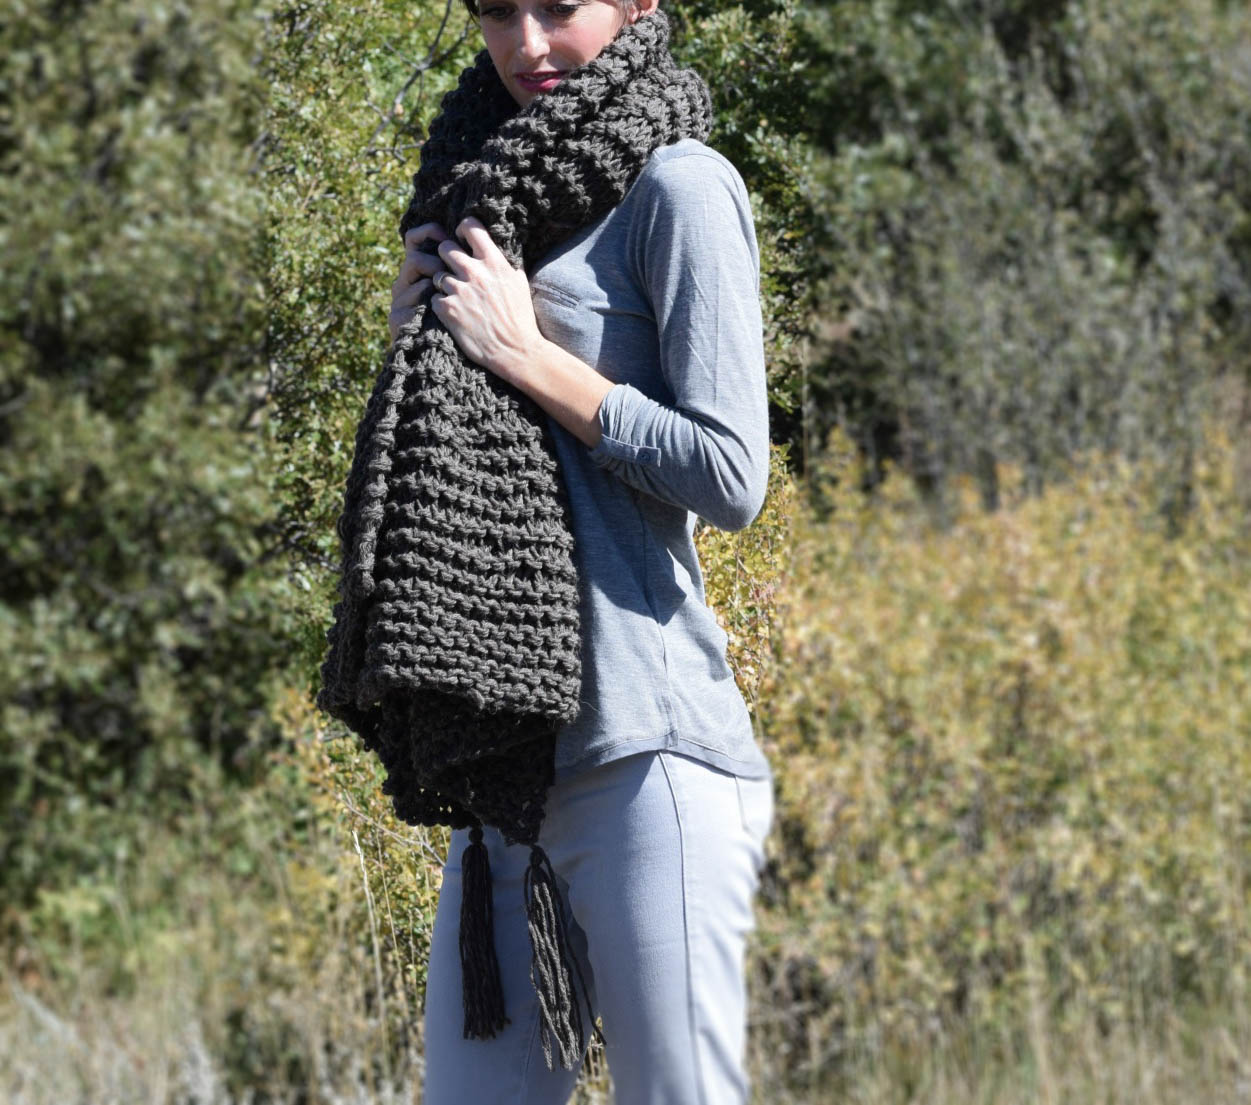 Knitting Patterns For Big Scarves : Big Beginner Knit Shawl - Scarf Pattern   Mama In A Stitch